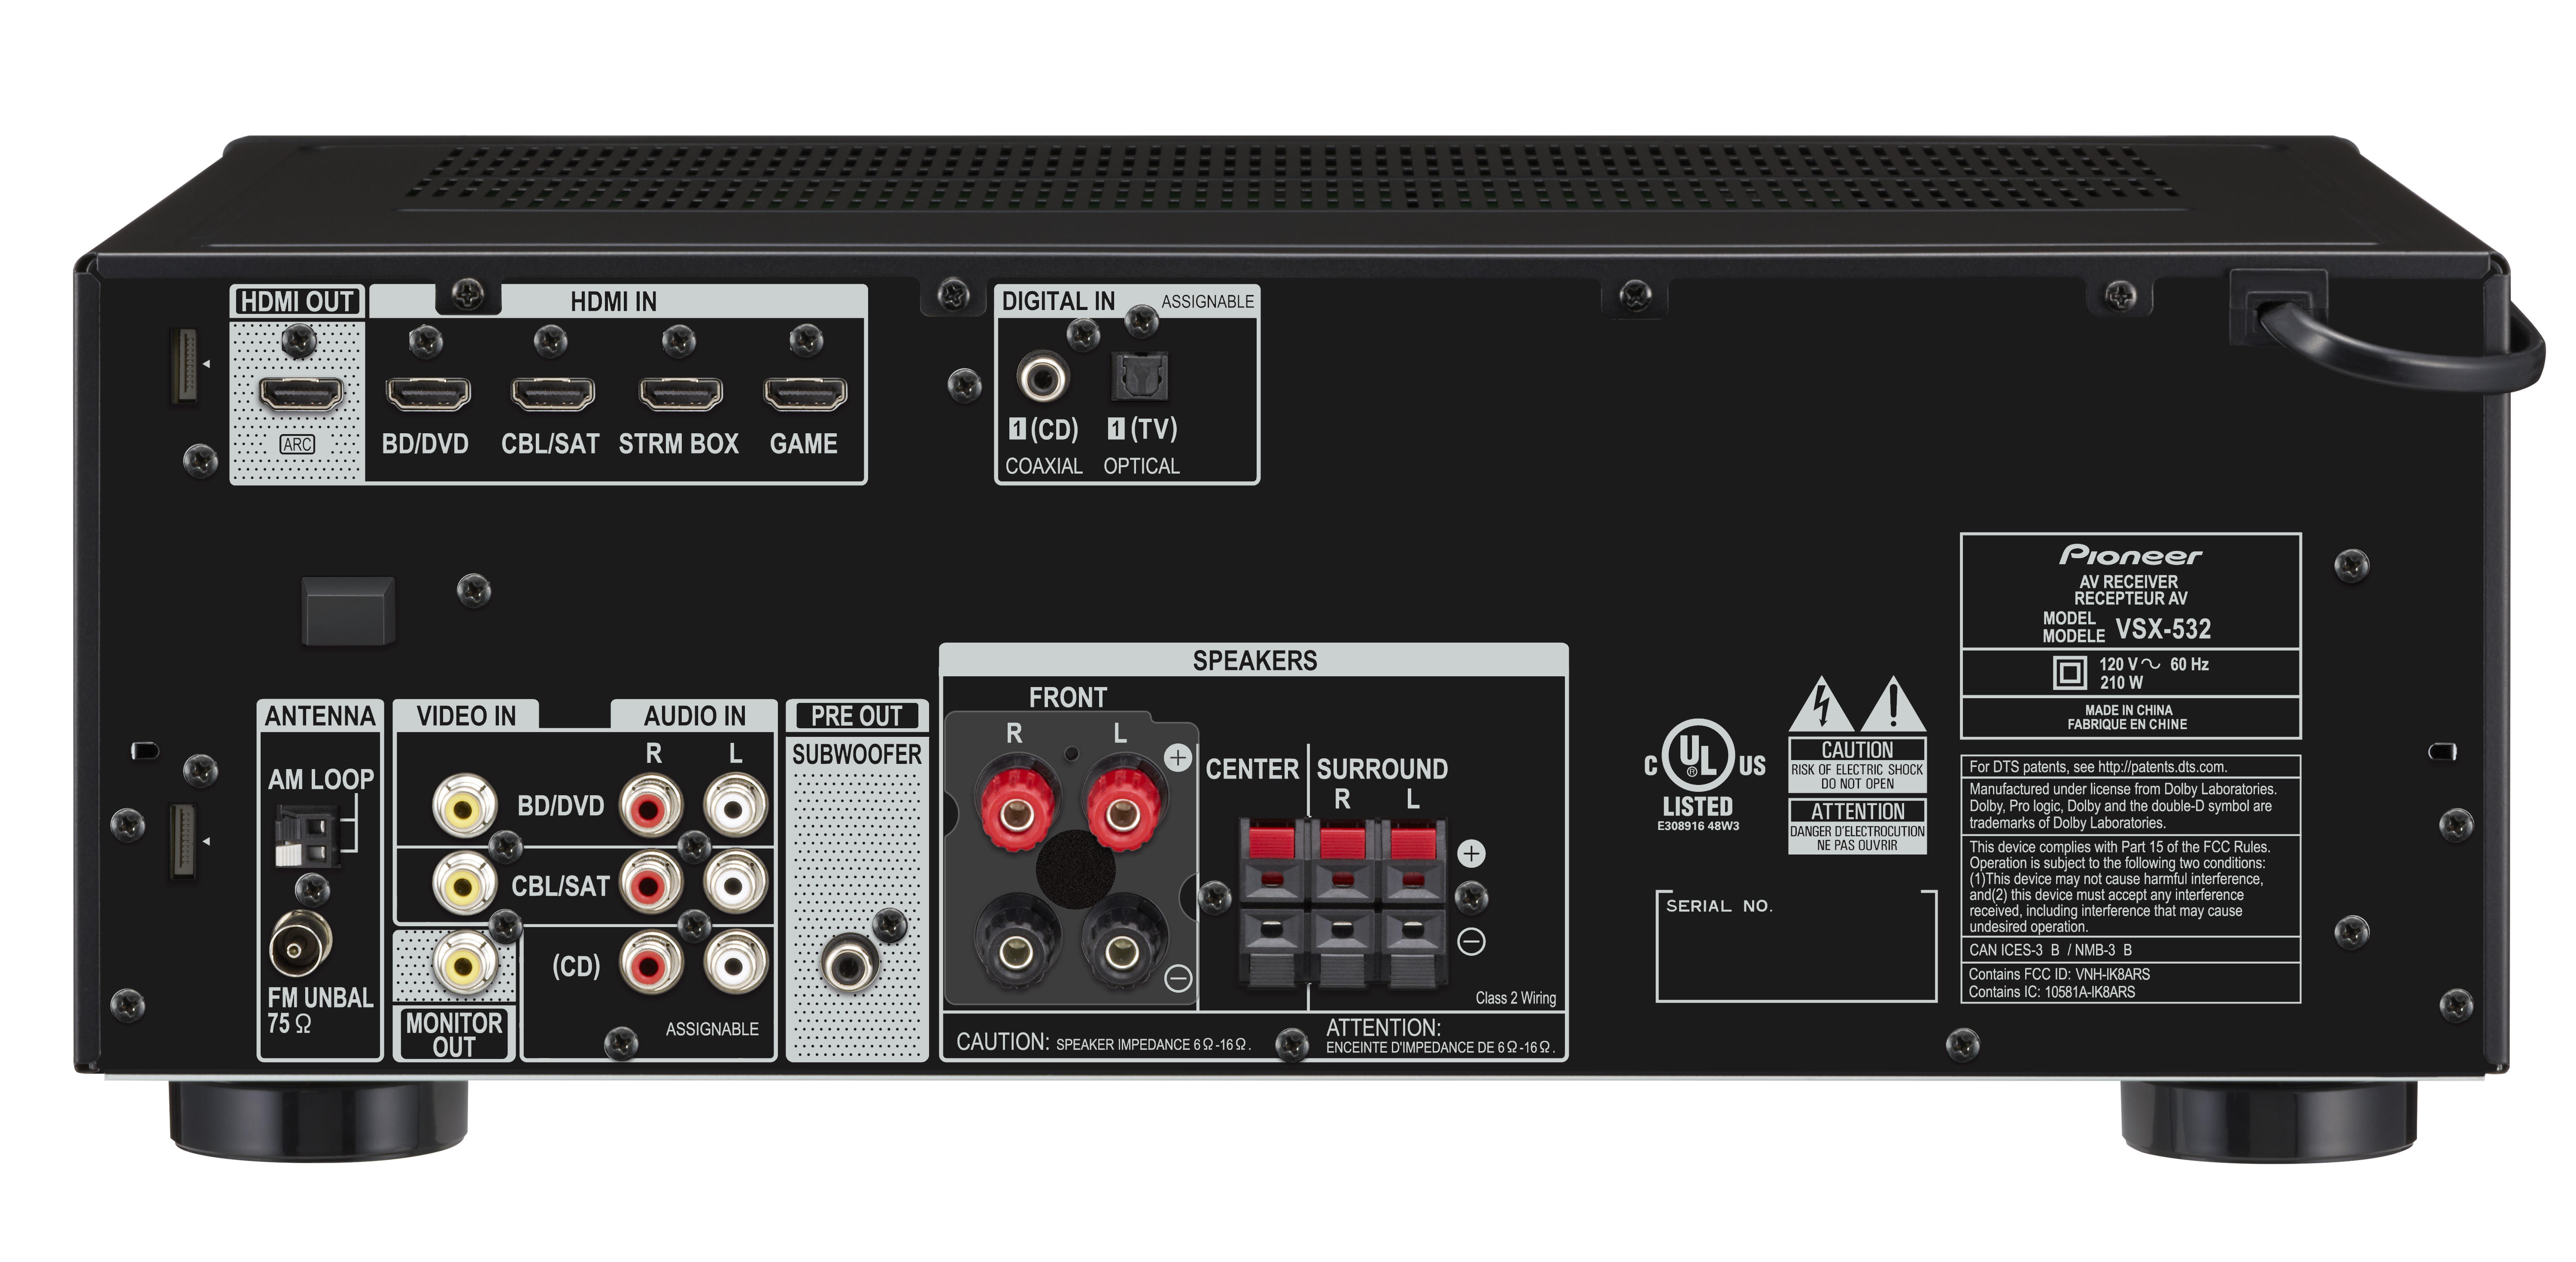 Vsx 532 Av Receivers Products Pioneer Home Audio Visual Power Amplifier Compatible With Tv